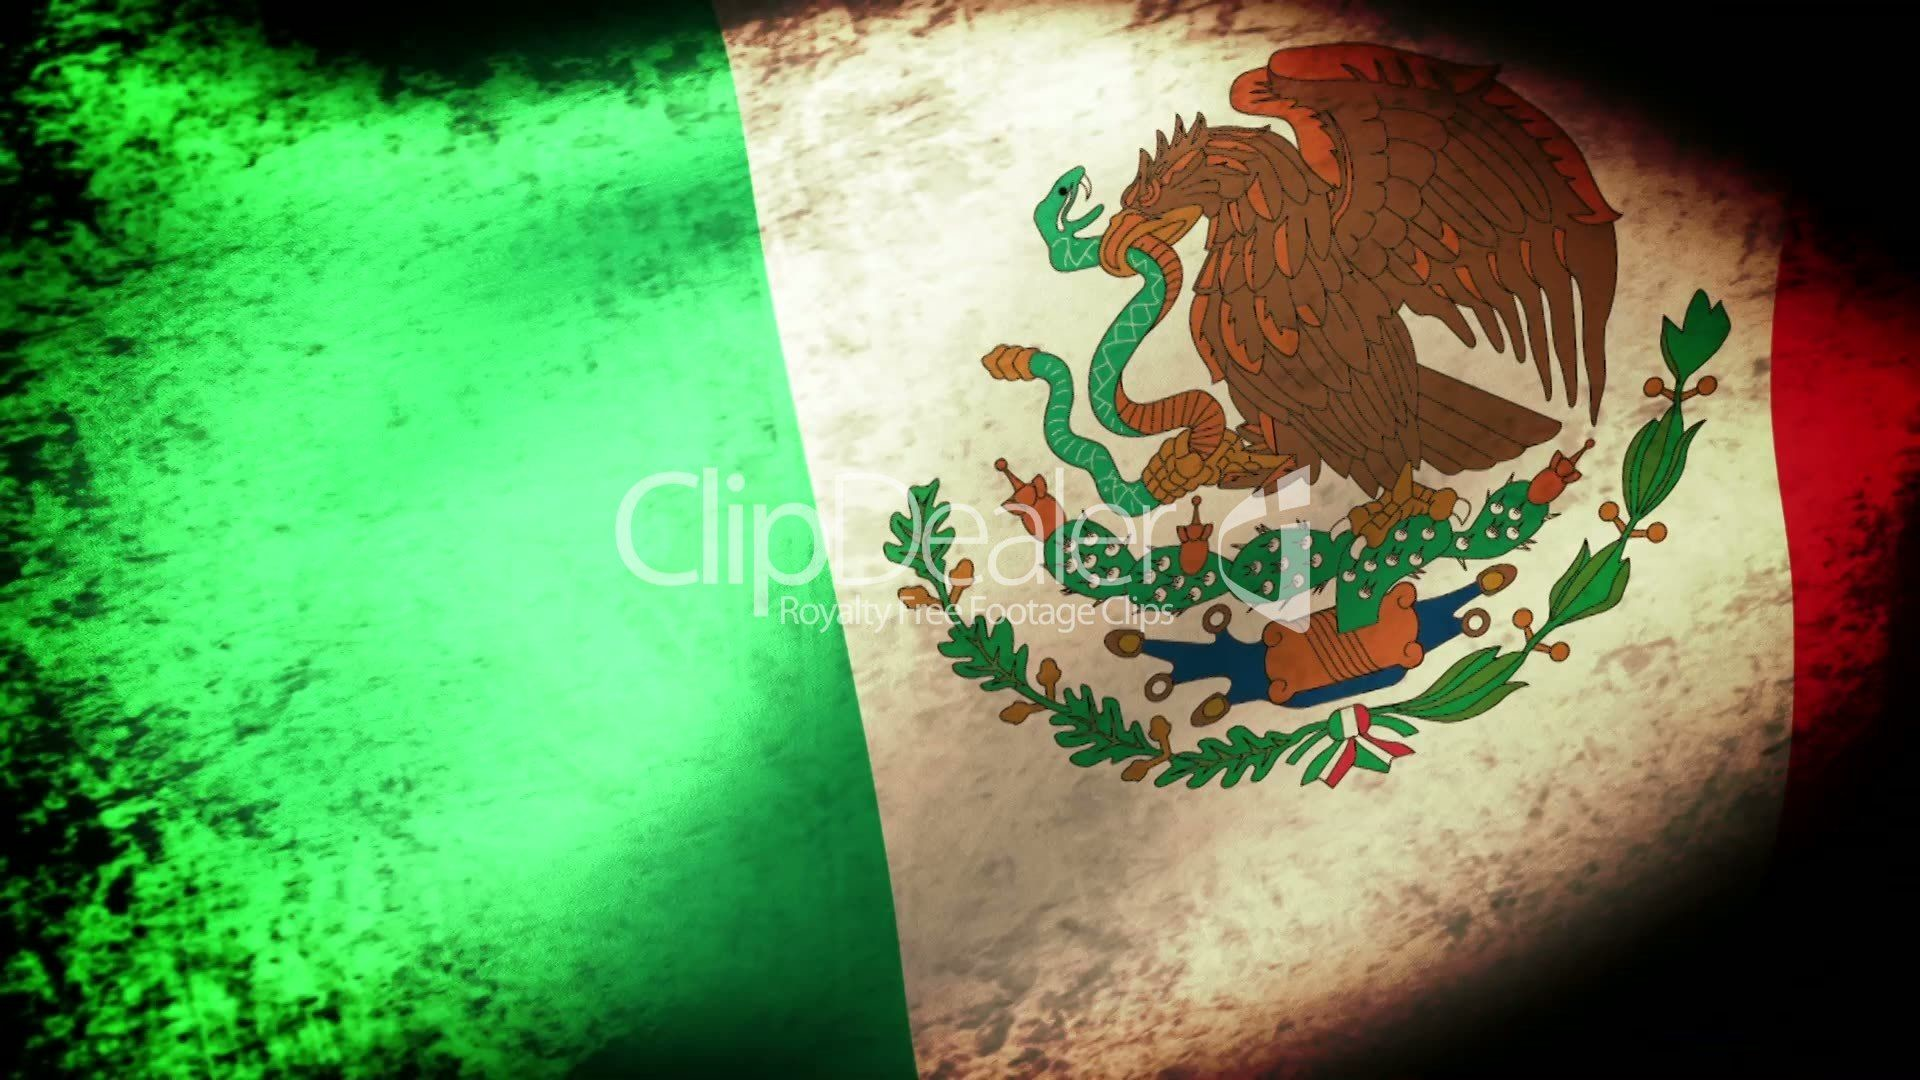 1920x1080 Cool Mexican Wallpapers - WallpaperSafari